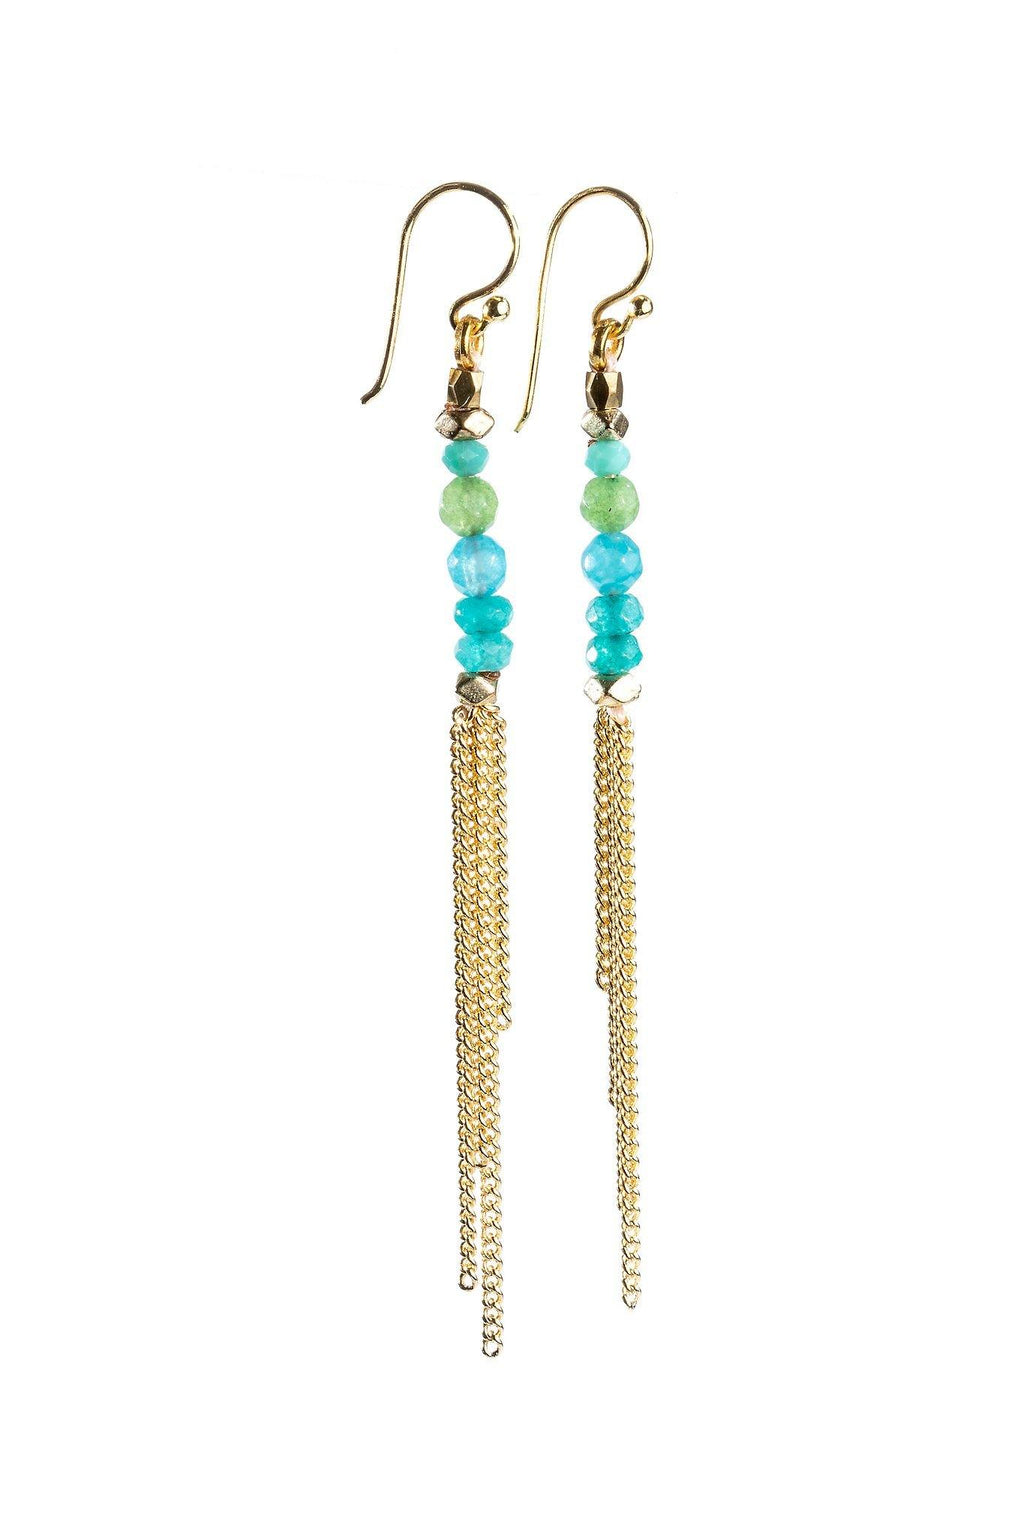 These are handmade, fair trade earrings made with gemstones and a chain tassel. Gold plated hooks. These single strand beaded earrings are lightweight and sexy. The tassel gives it a unique style.